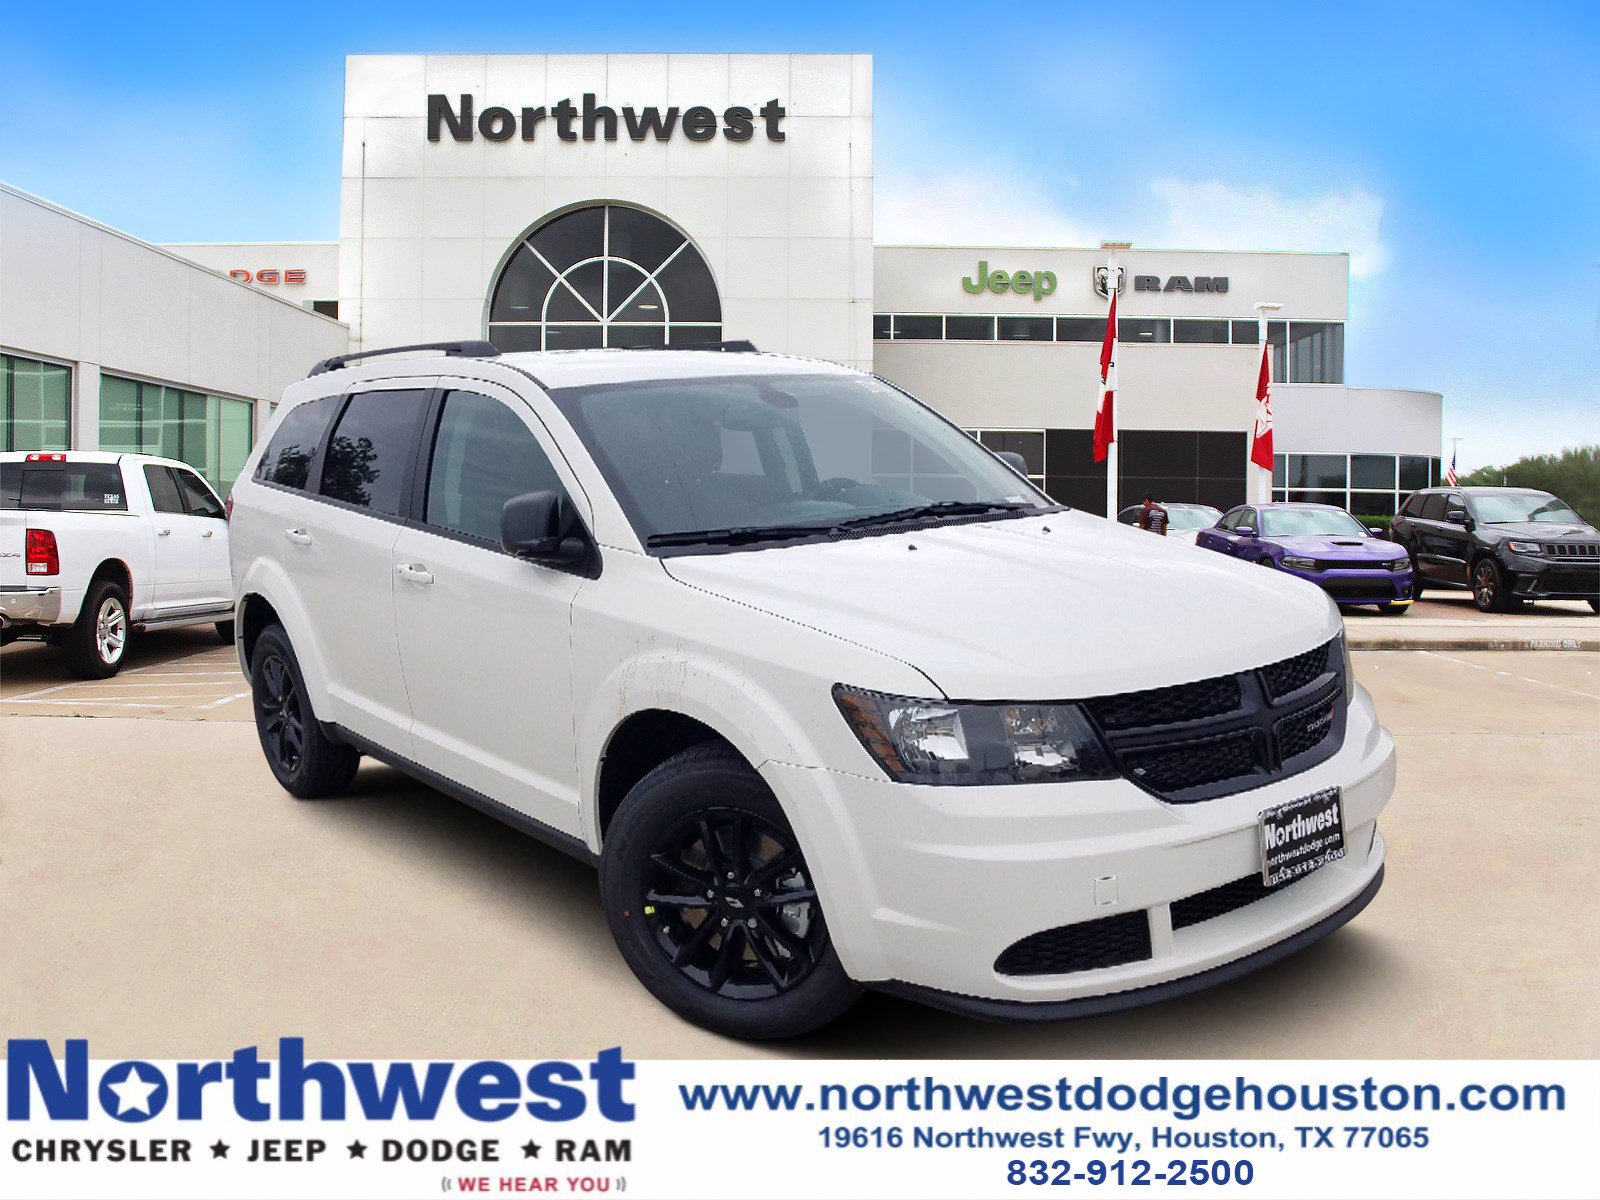 2020 Dodge Journey Ratings